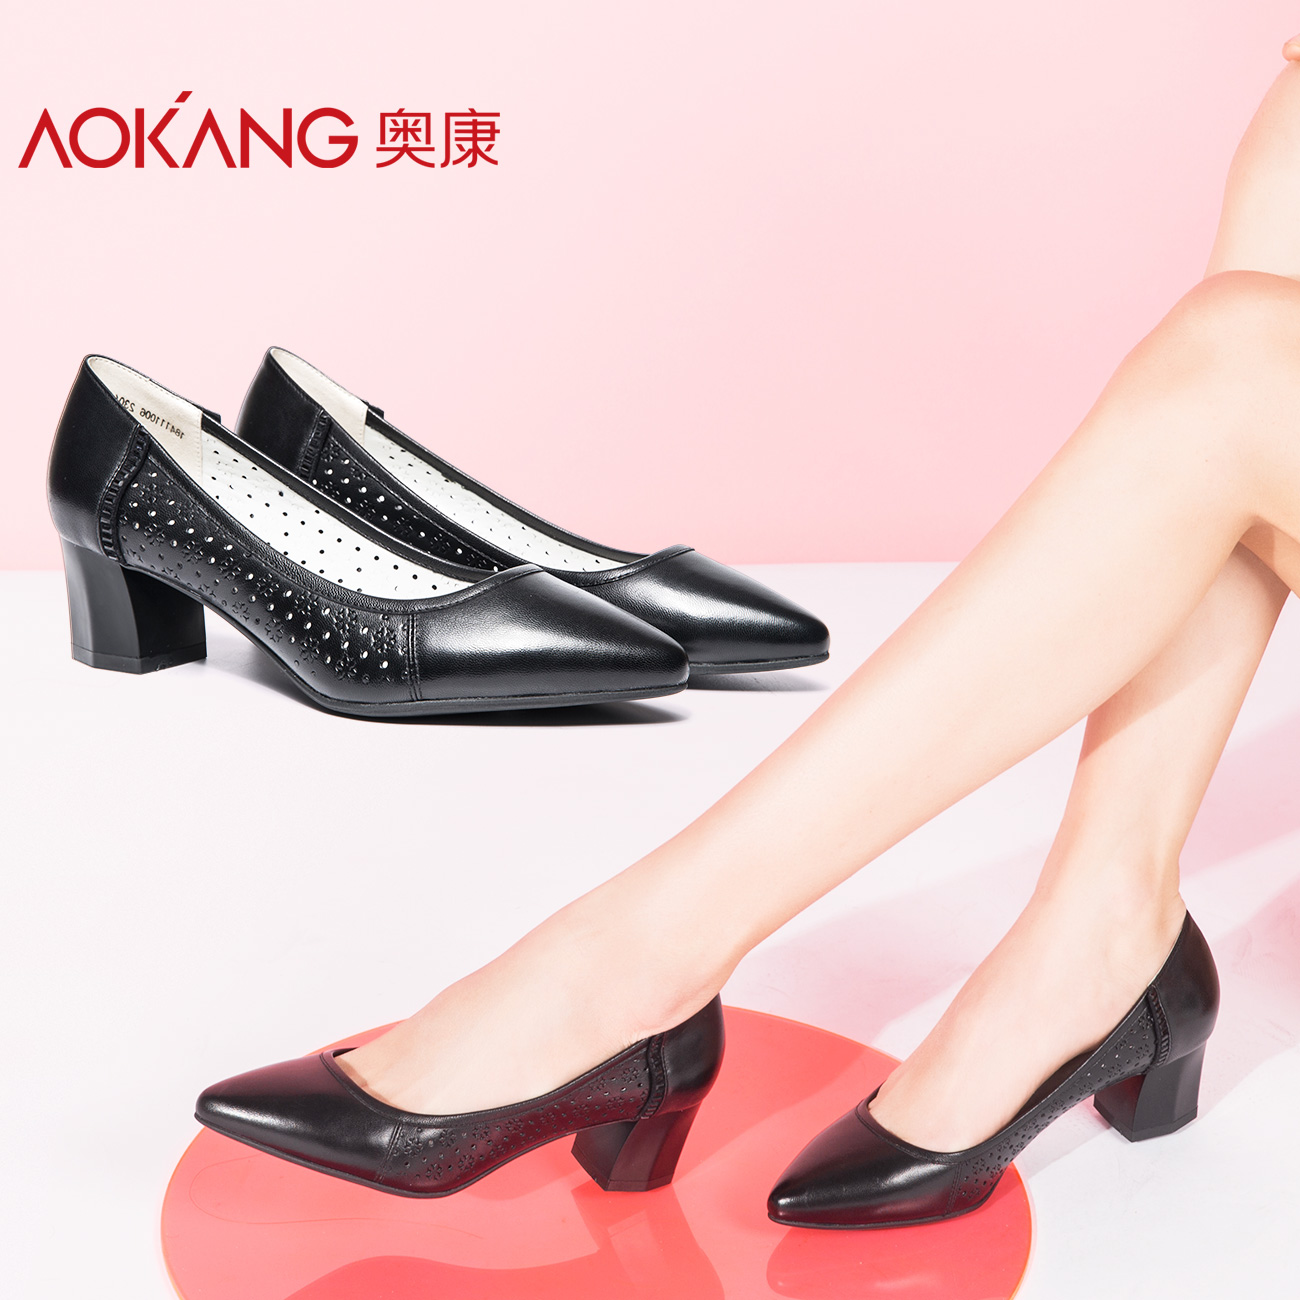 [The goods stop production and no stock]Aokang Women's Shoes Fashion New Products Tip-toed, Rough-heeled, Hole-in-the-hole Pure-color Business Women's Shoes Single-shoe White-collar Style